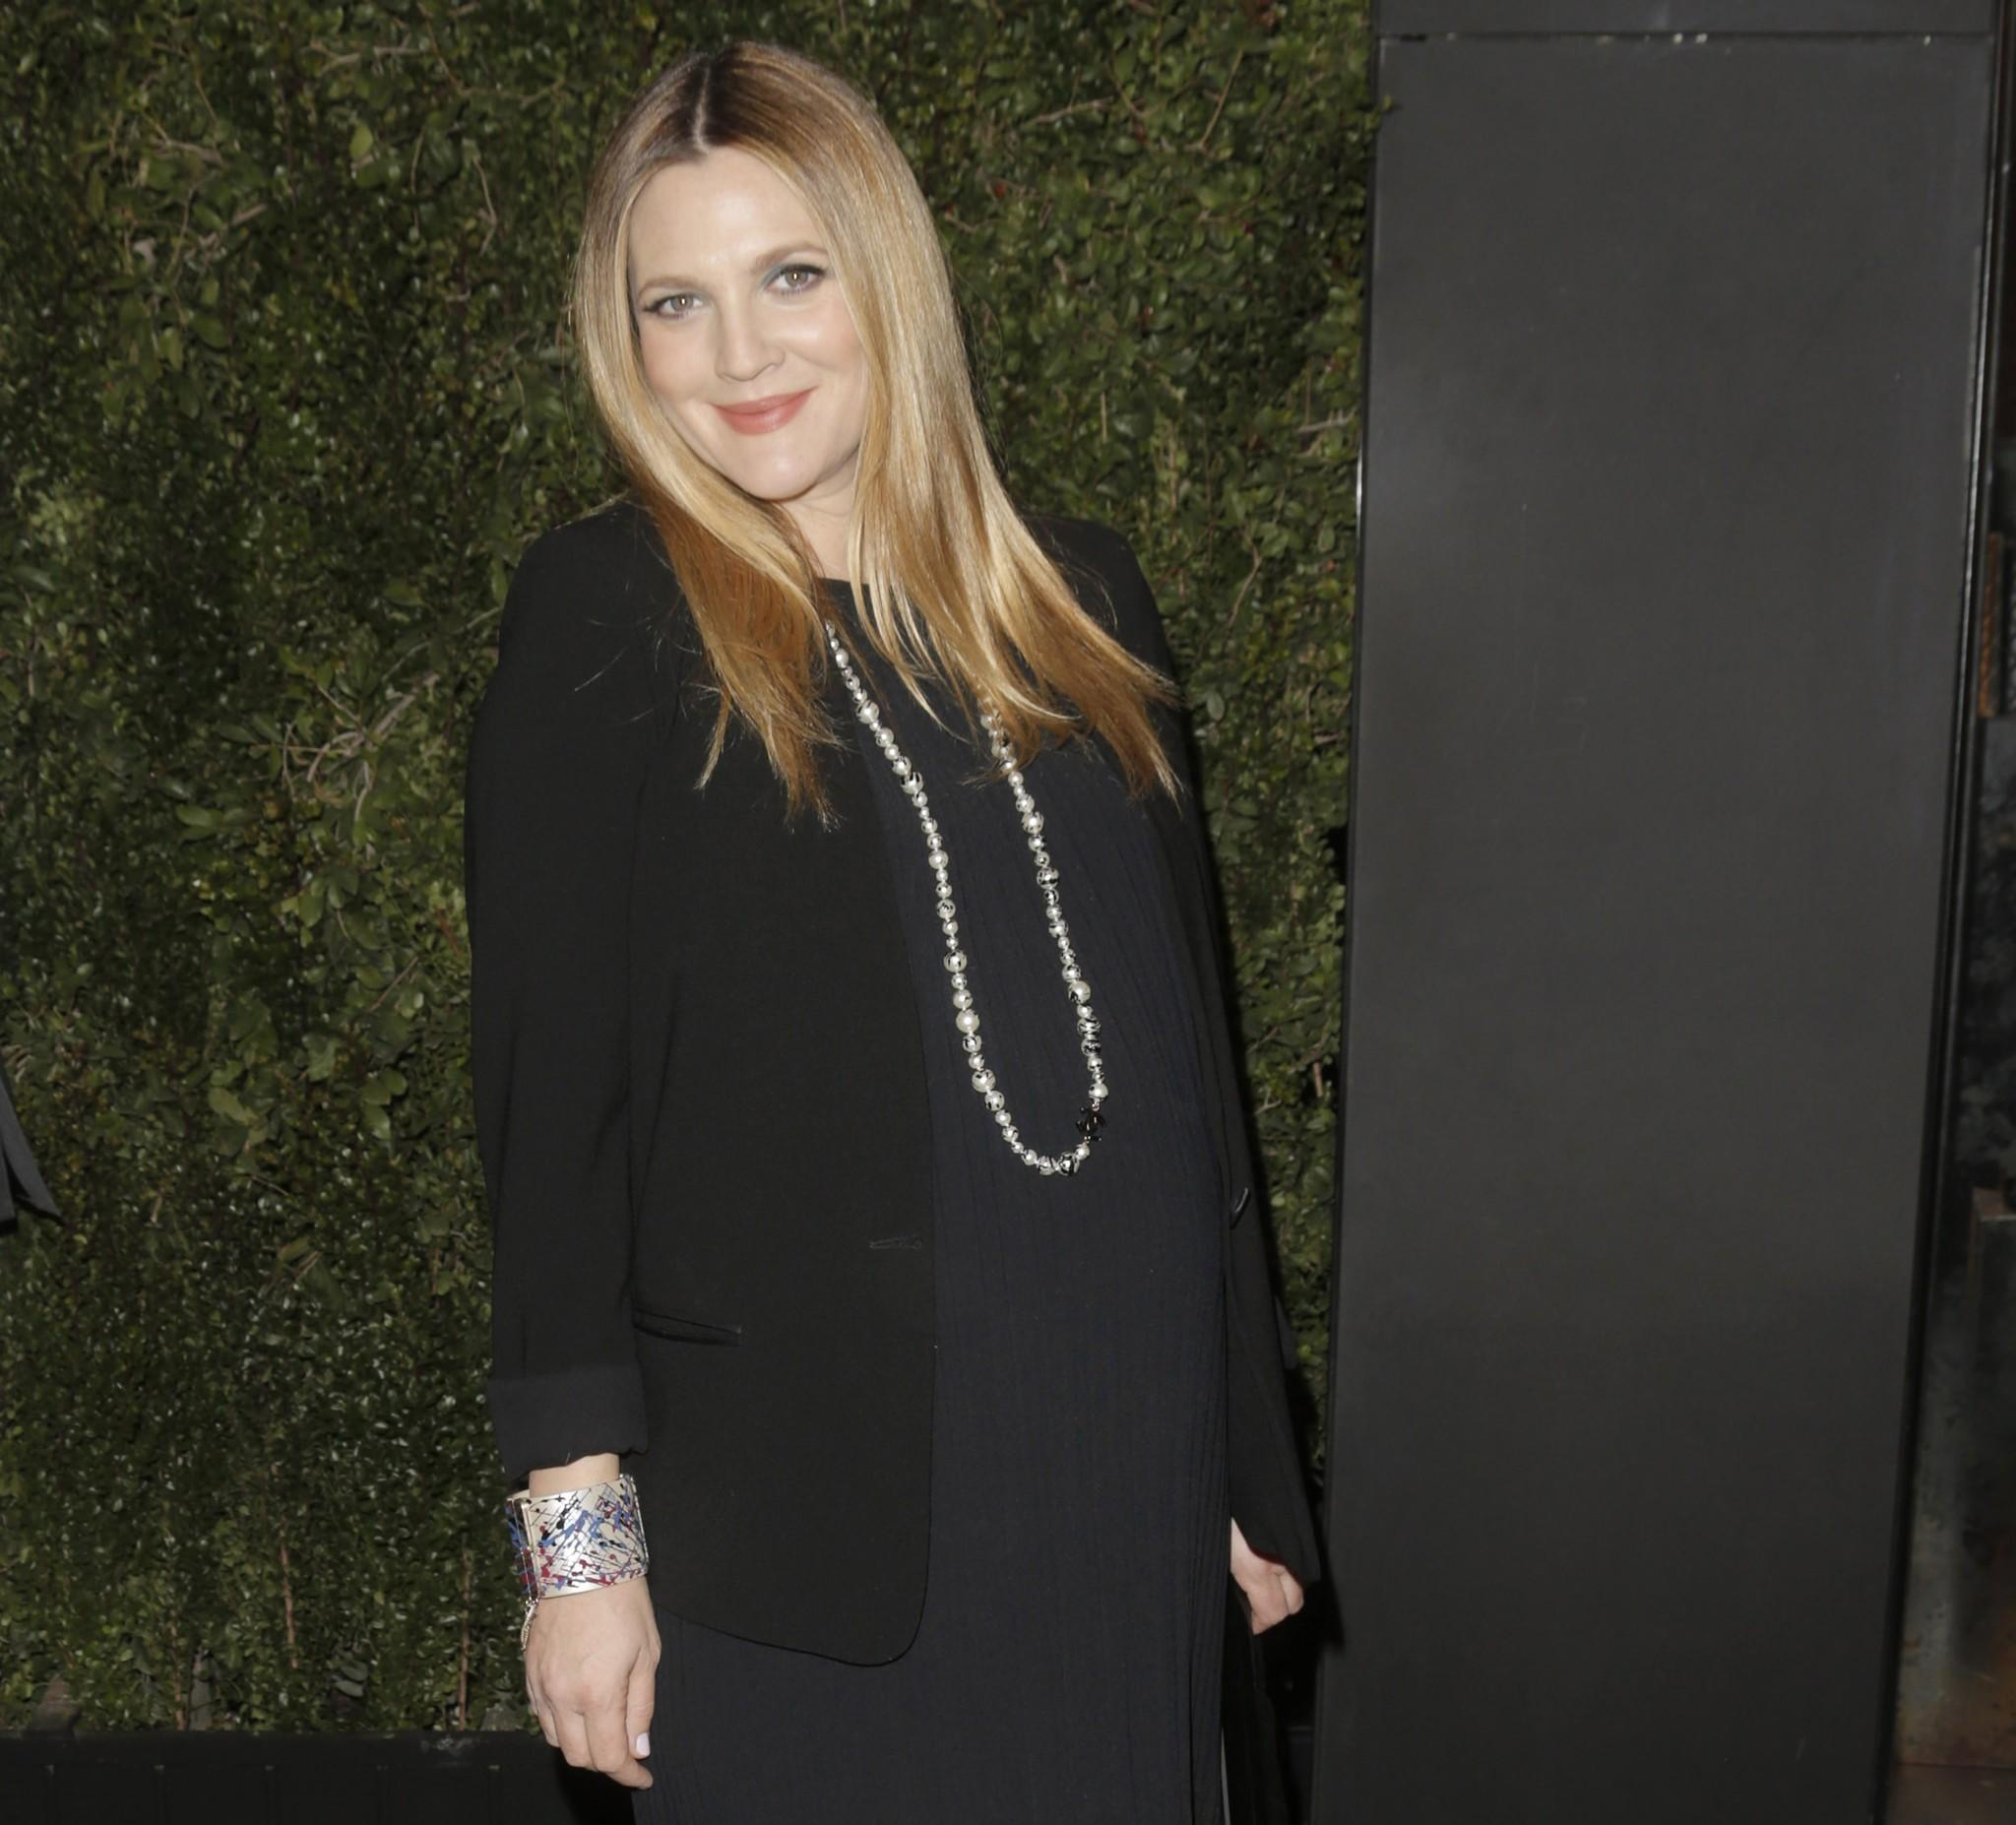 Drew Barrymore has welcomed her second child with husband Will Kopelman, a baby girl named Frankie.